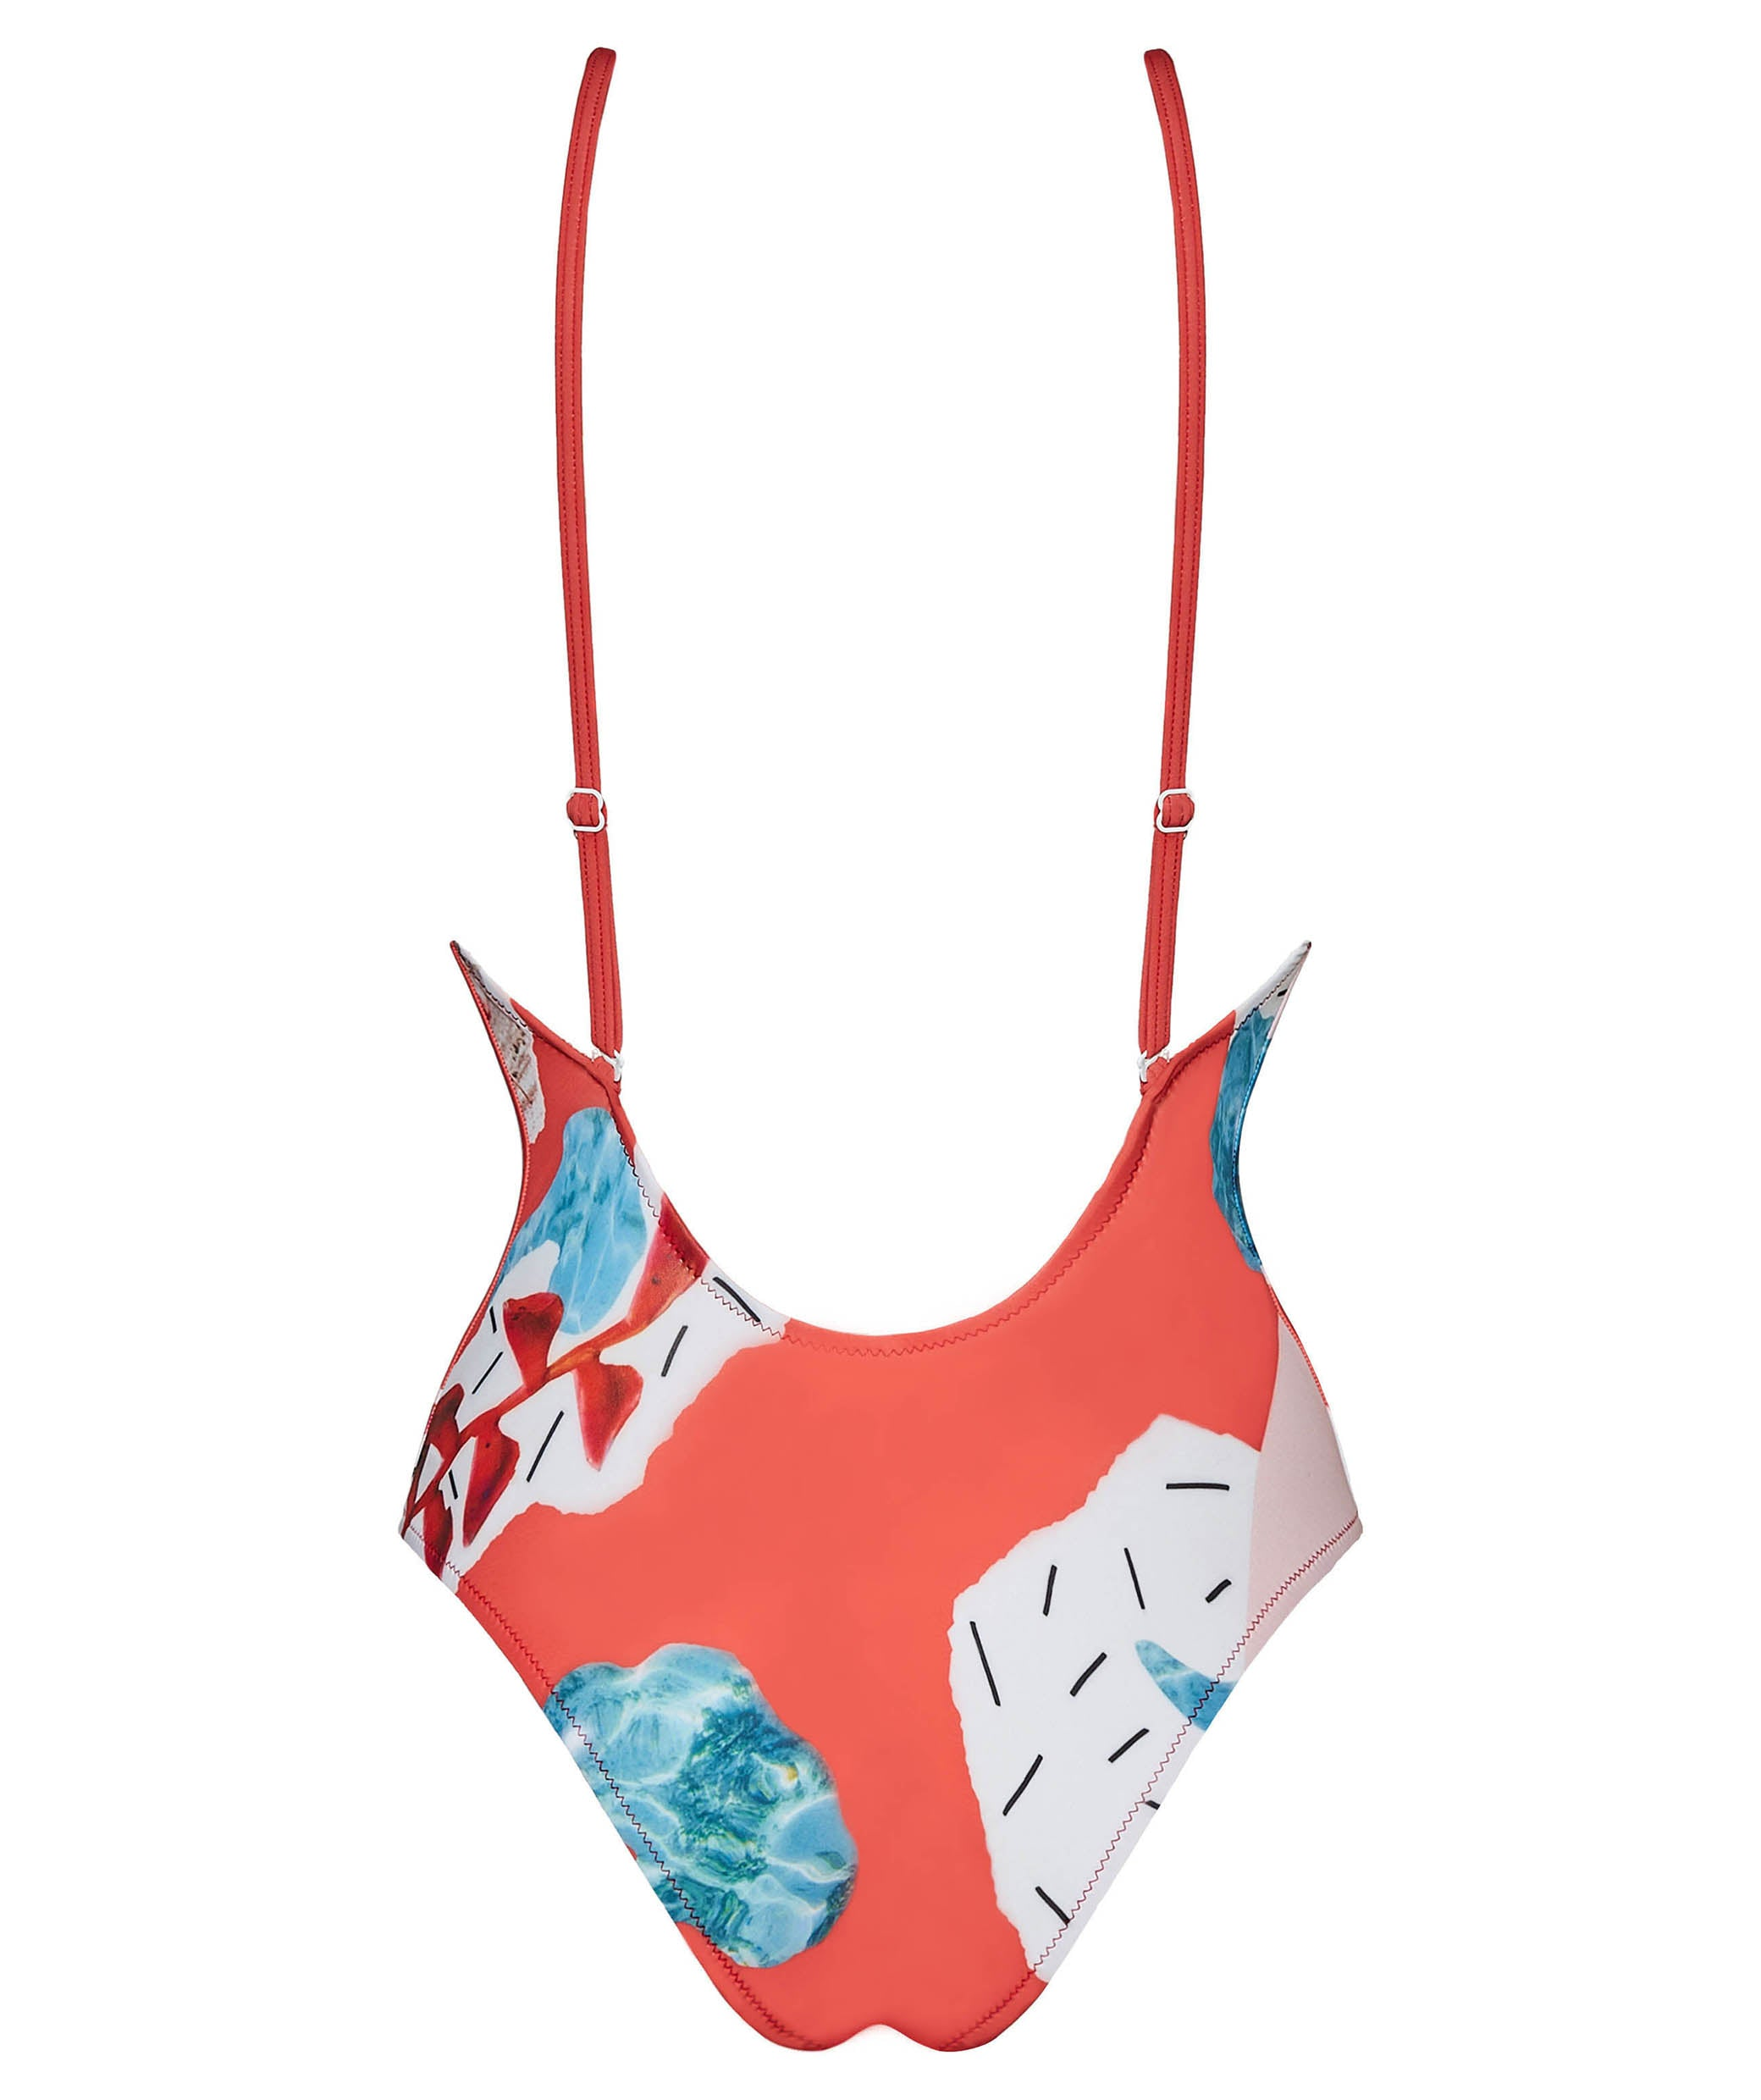 Boogaloo One-Piece Swimsuit Color Cross Back - Straight Back design